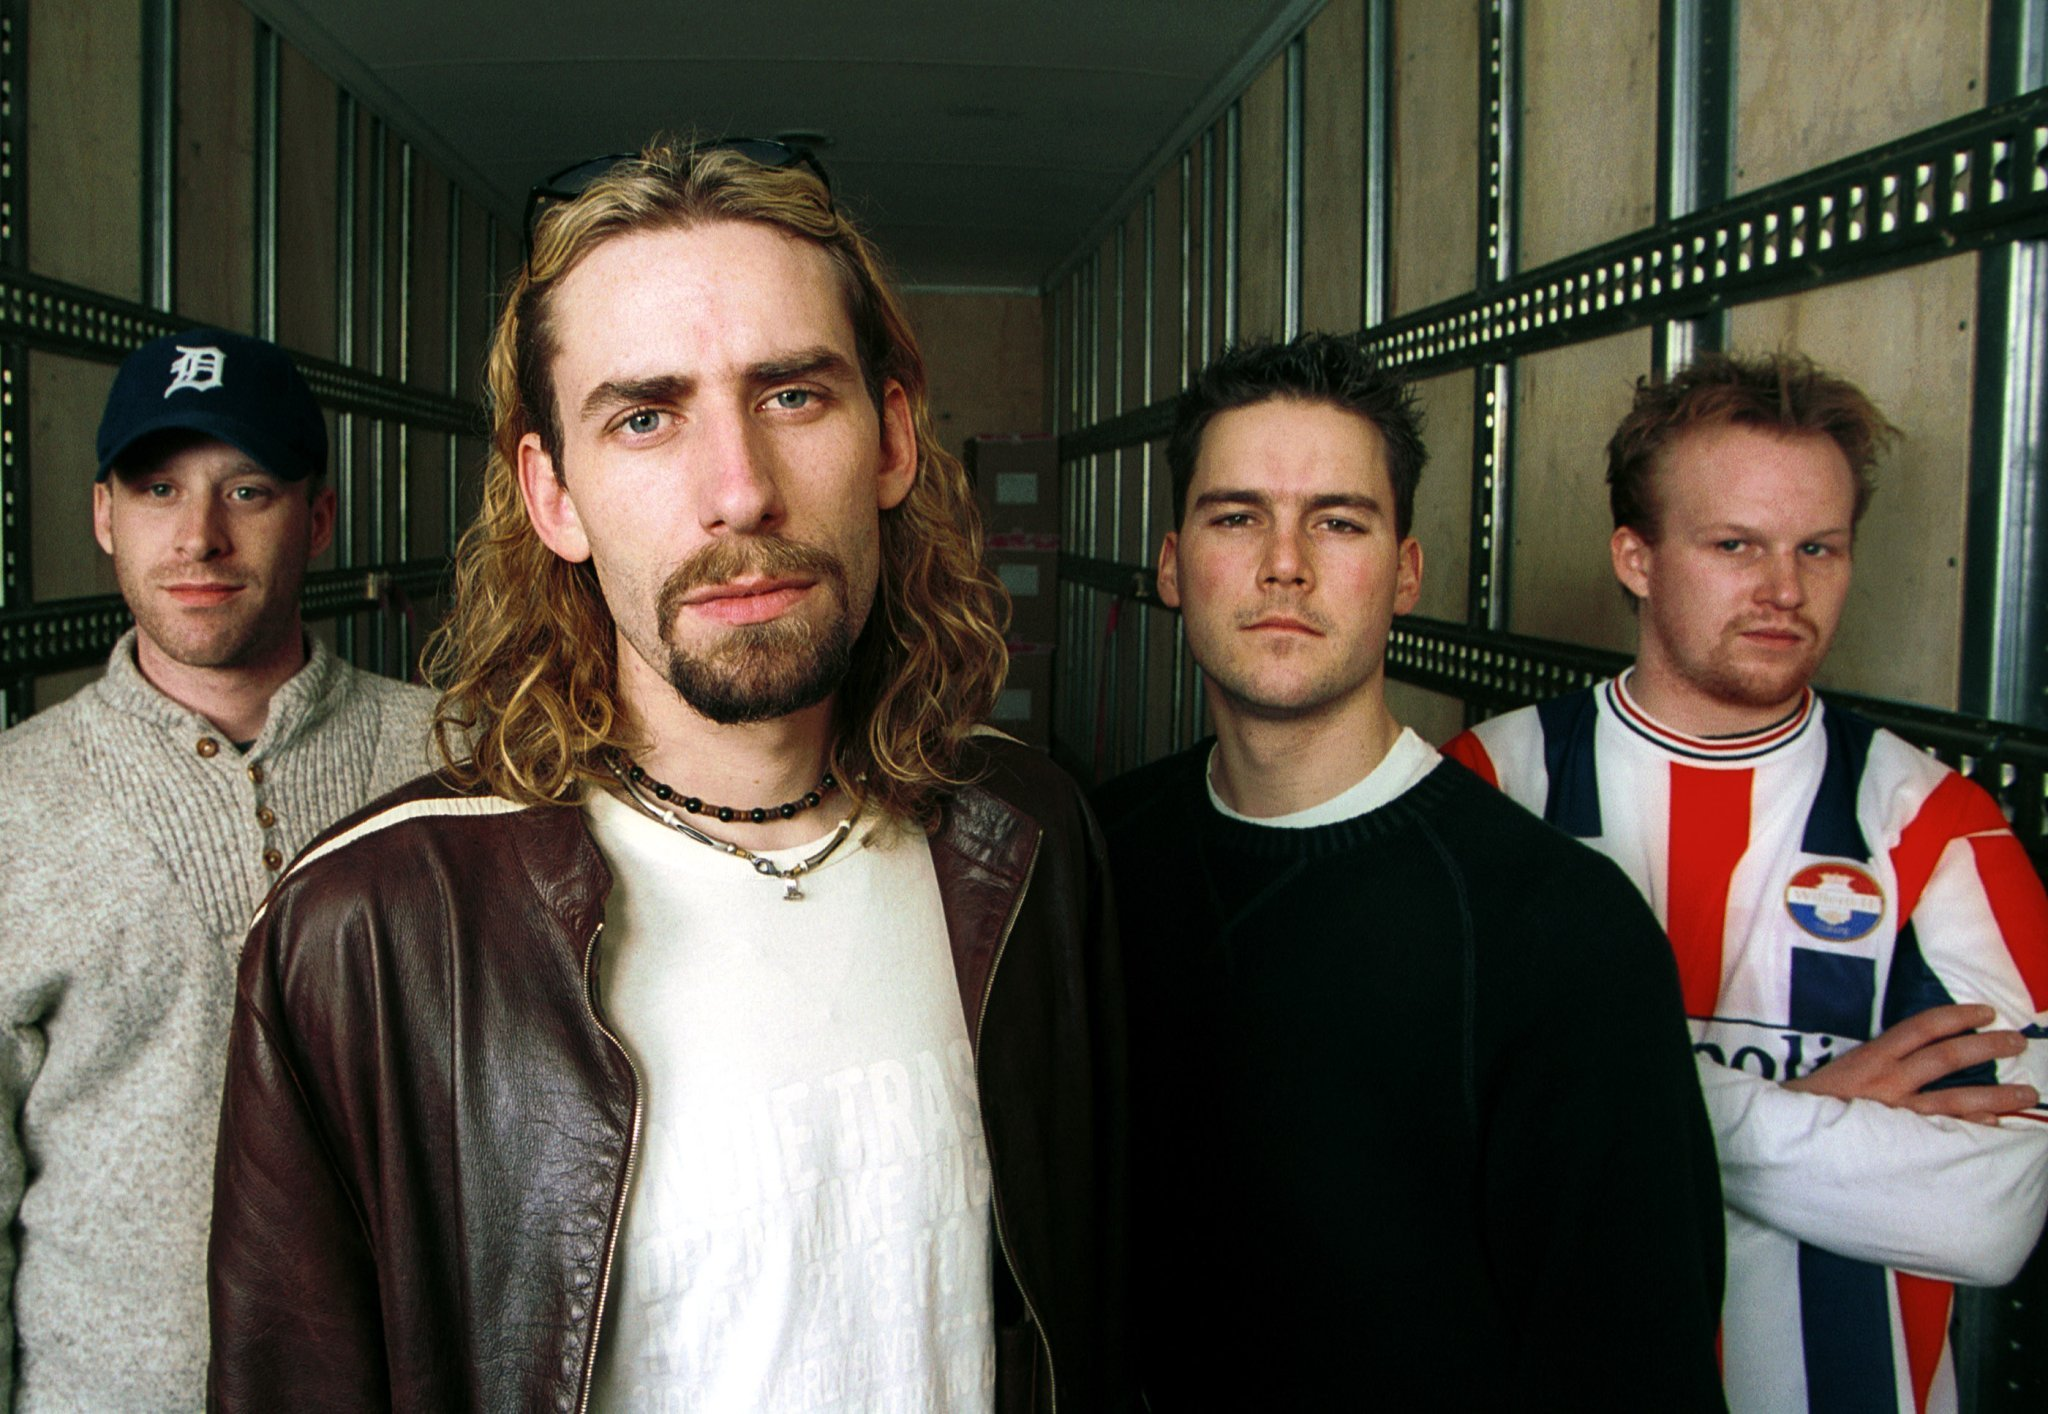 These Nickelback songs don't suck